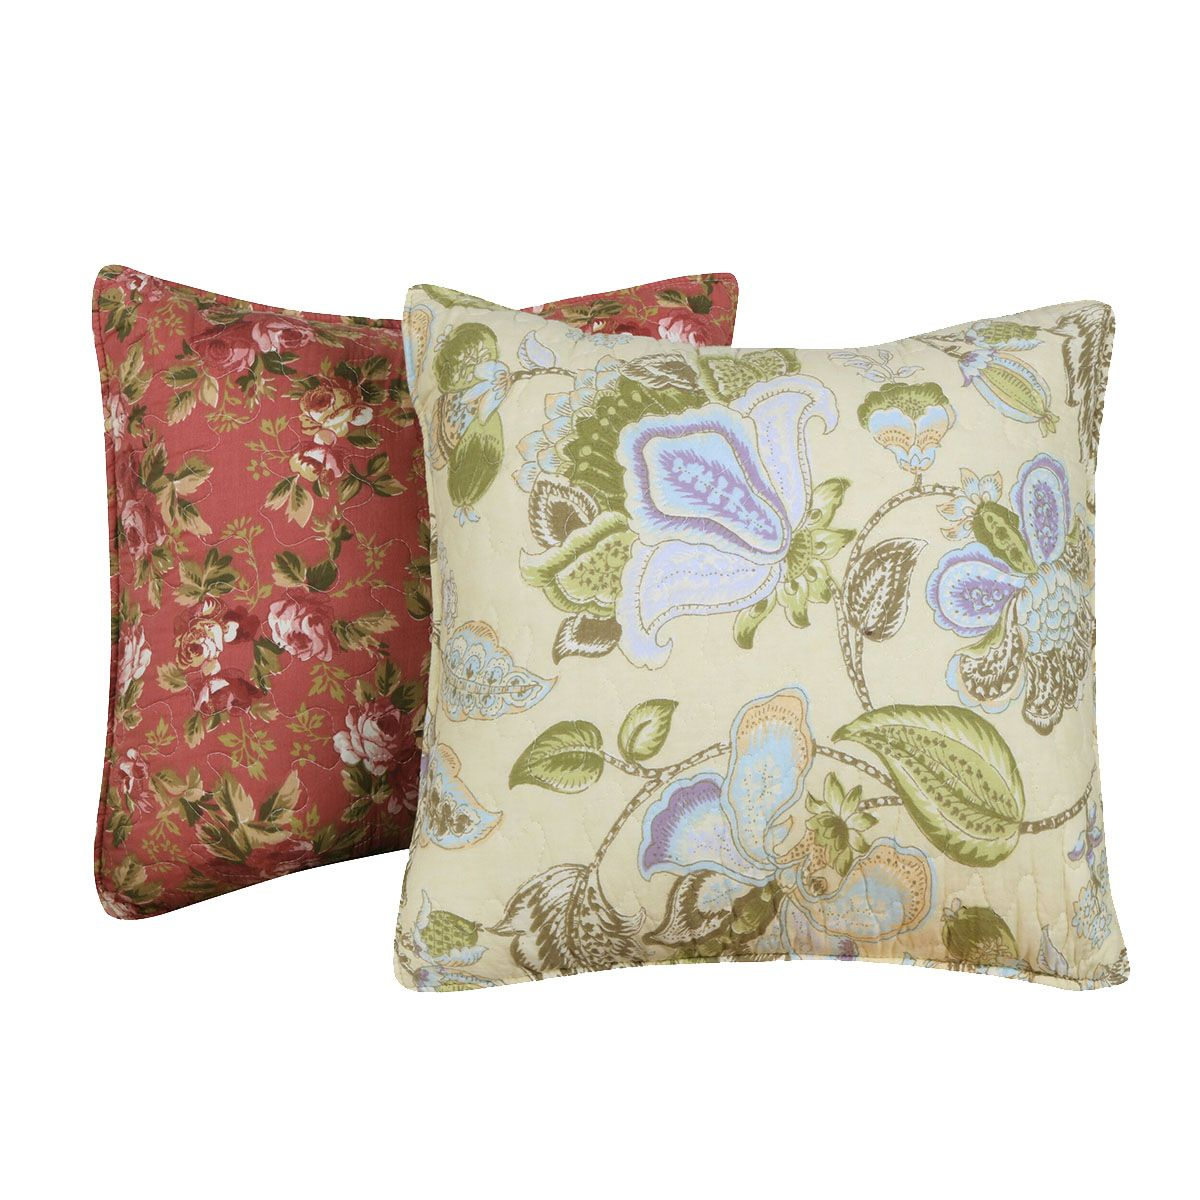 Floral Meadows Decorative Pillow Pair